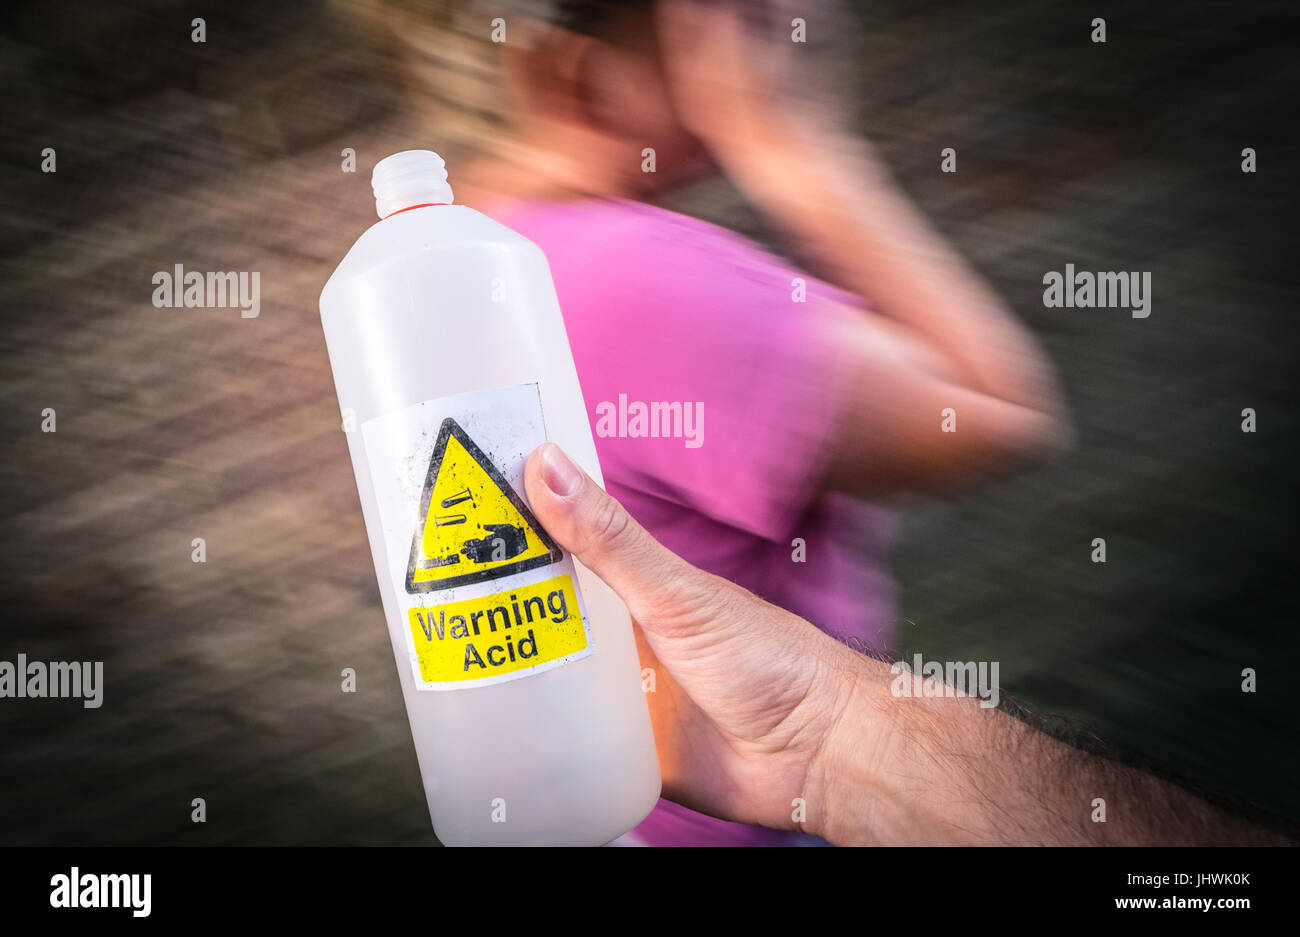 Acid Attack, A man holding an acid bottle in the street near a passing woman - Stock Image